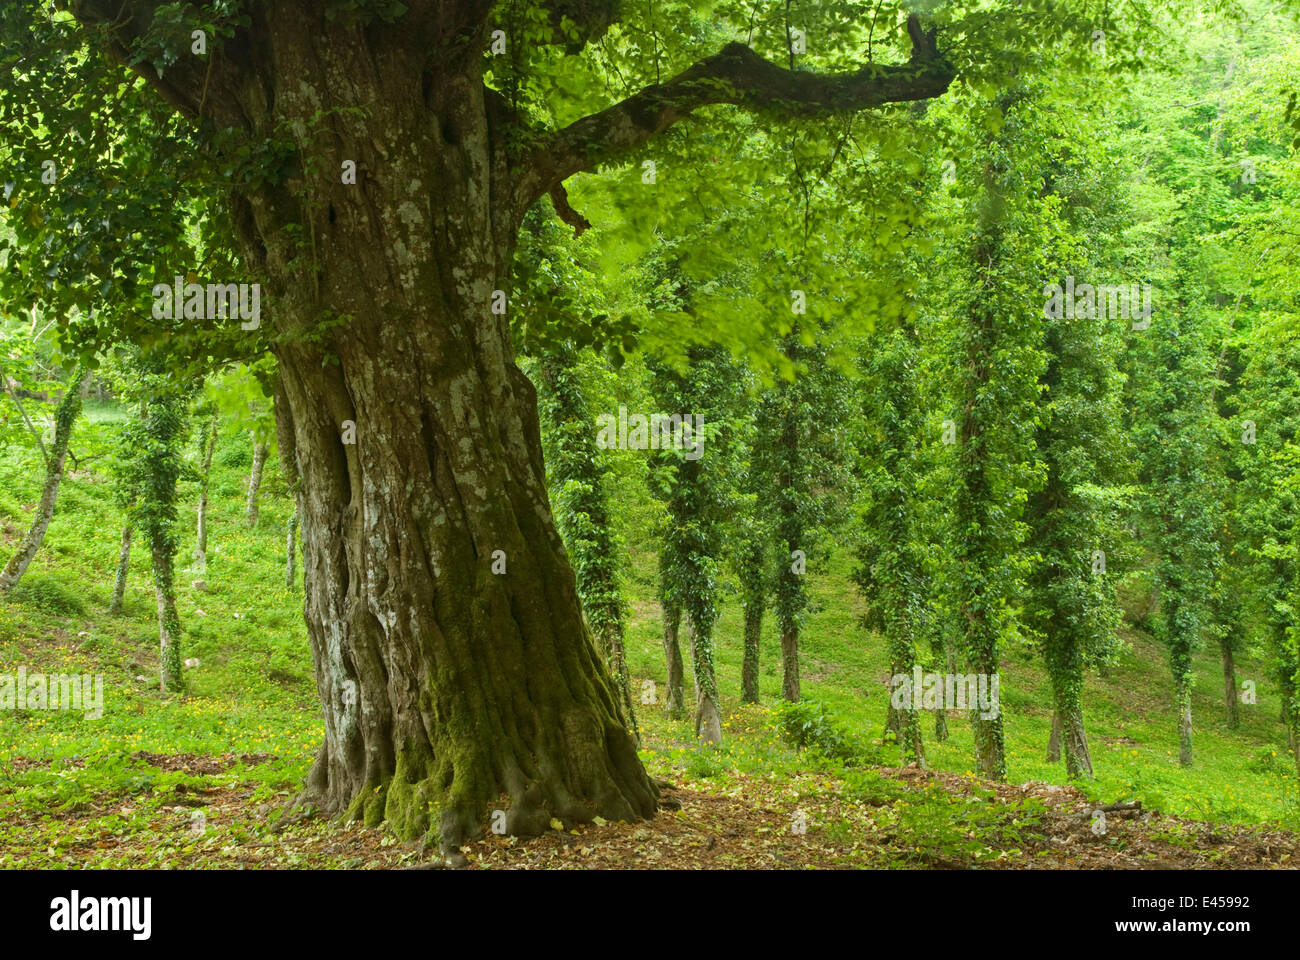 foresta umbra gargano national park stockfotos foresta umbra gargano national park bilder alamy. Black Bedroom Furniture Sets. Home Design Ideas